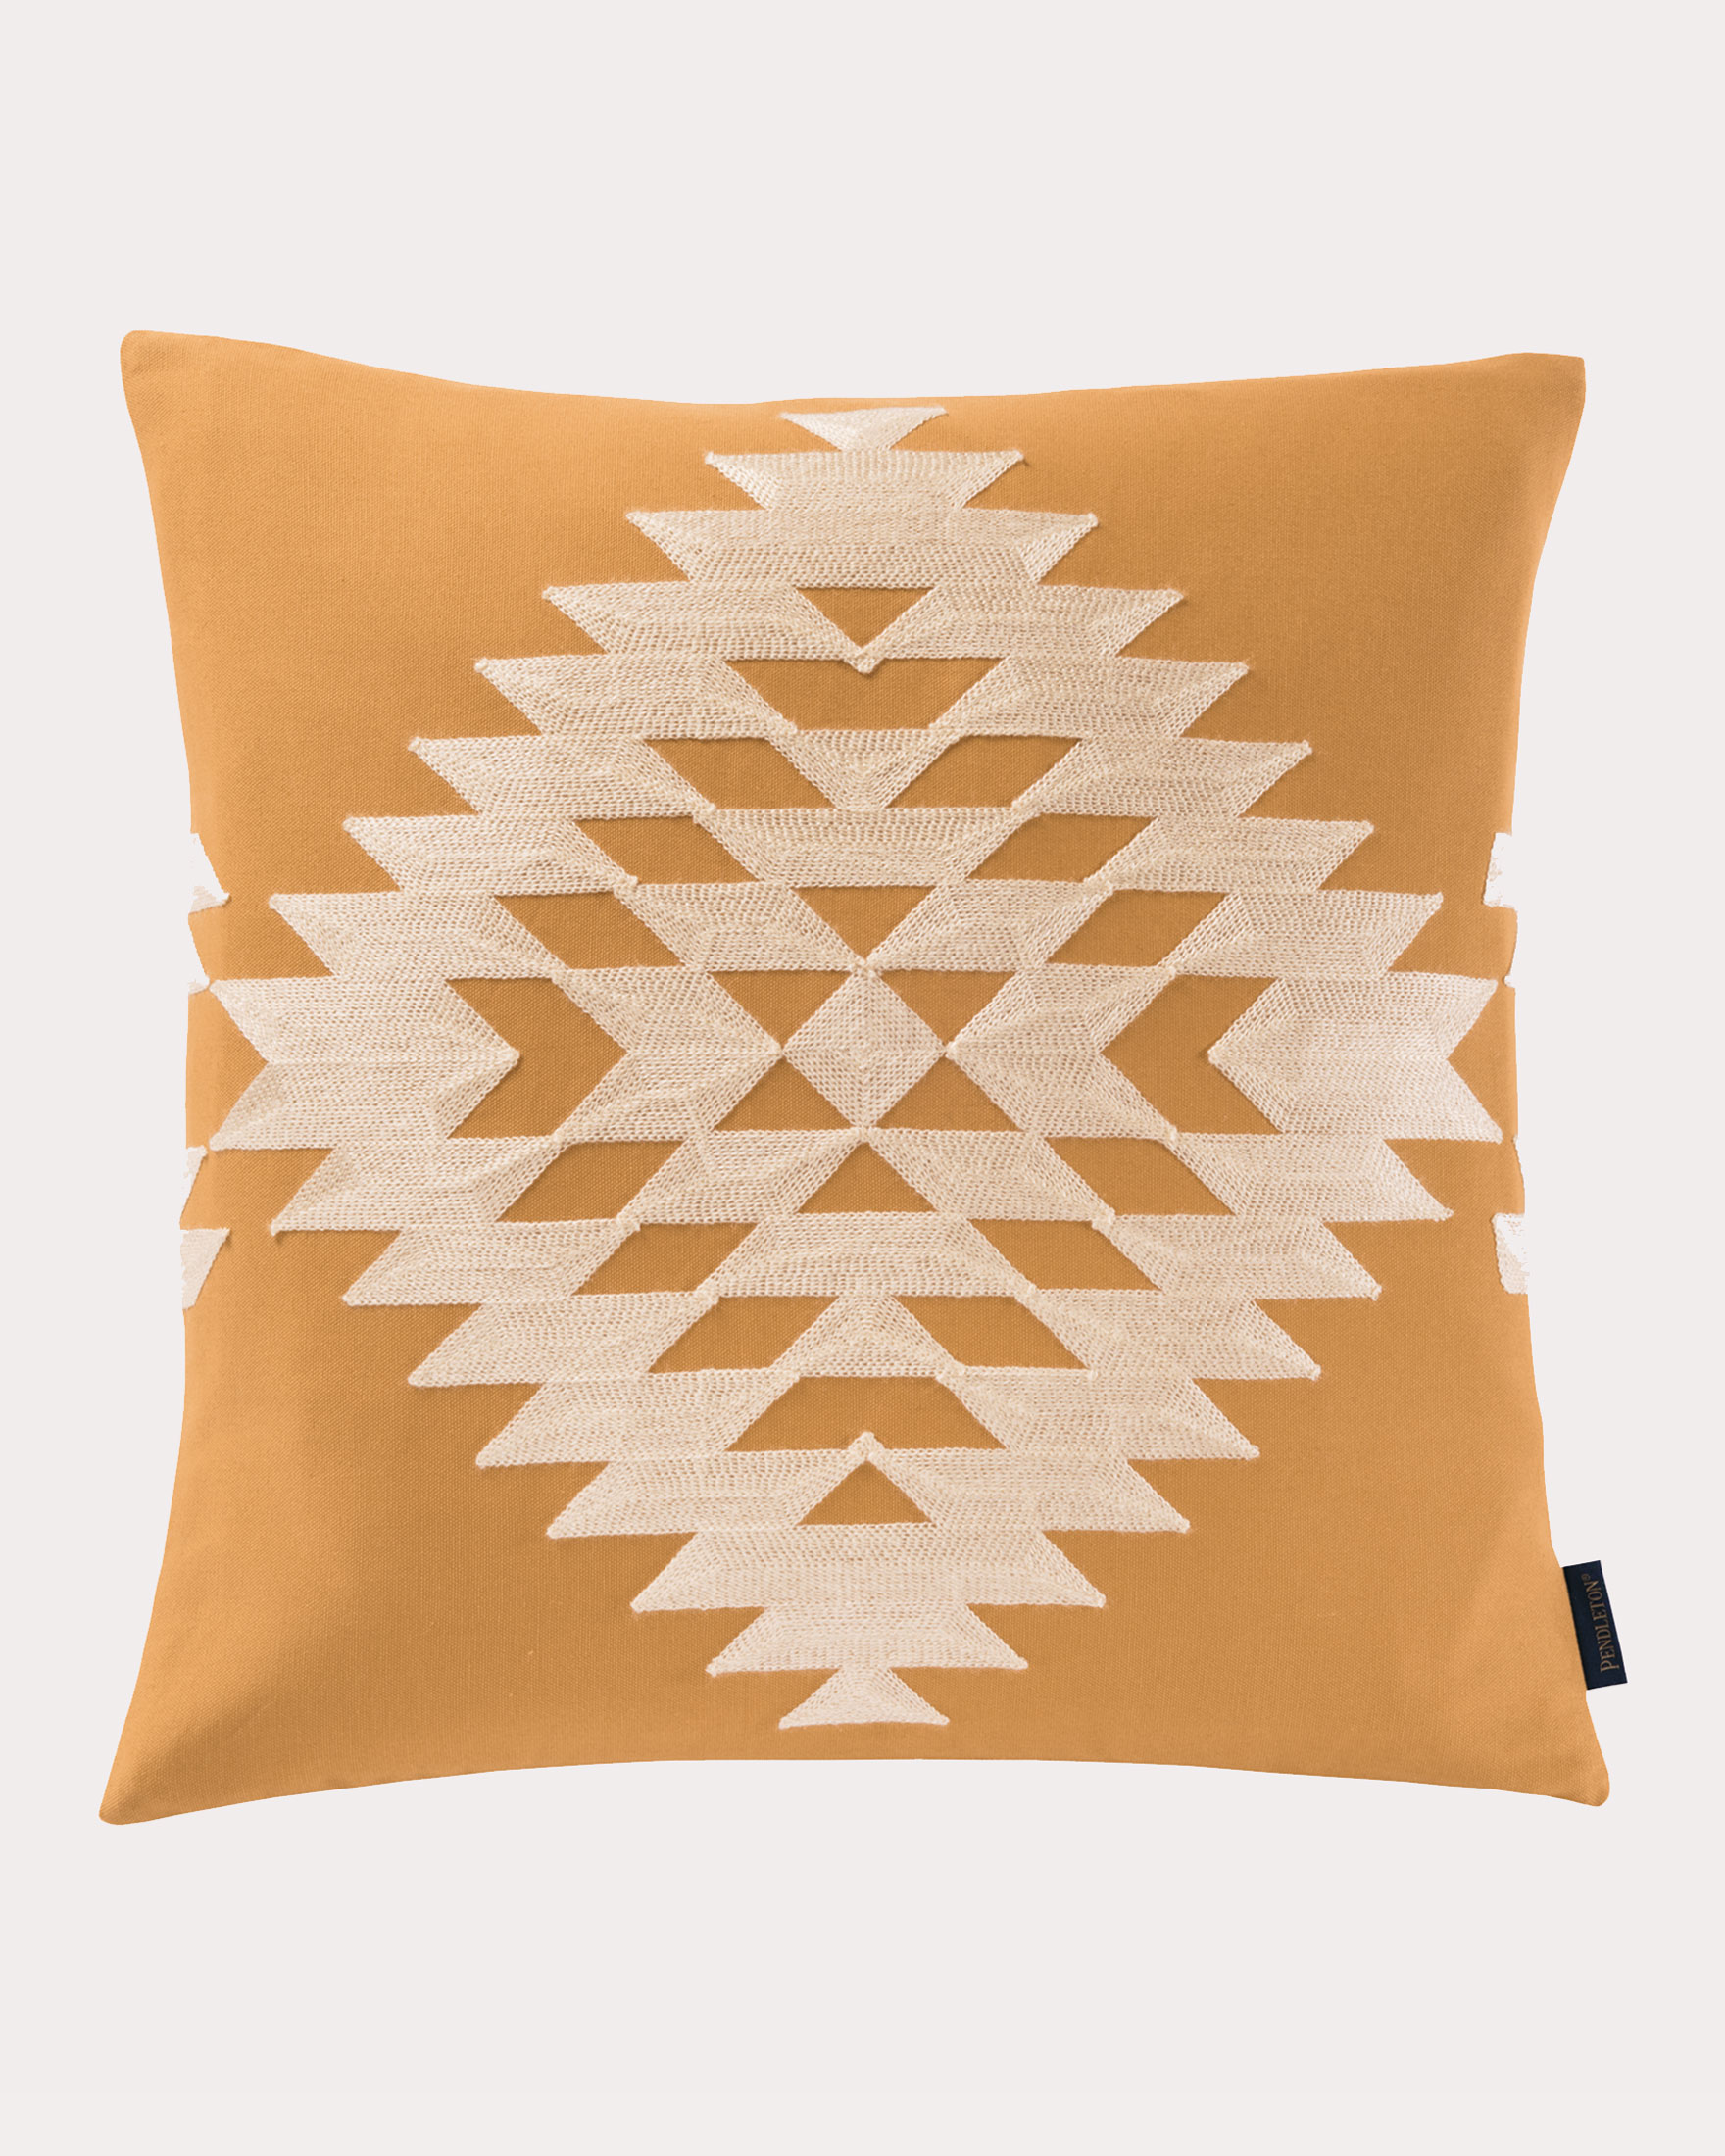 RANCHO ARROYO SQUARE EMBROIDERED PILLOW, CAMEL, large